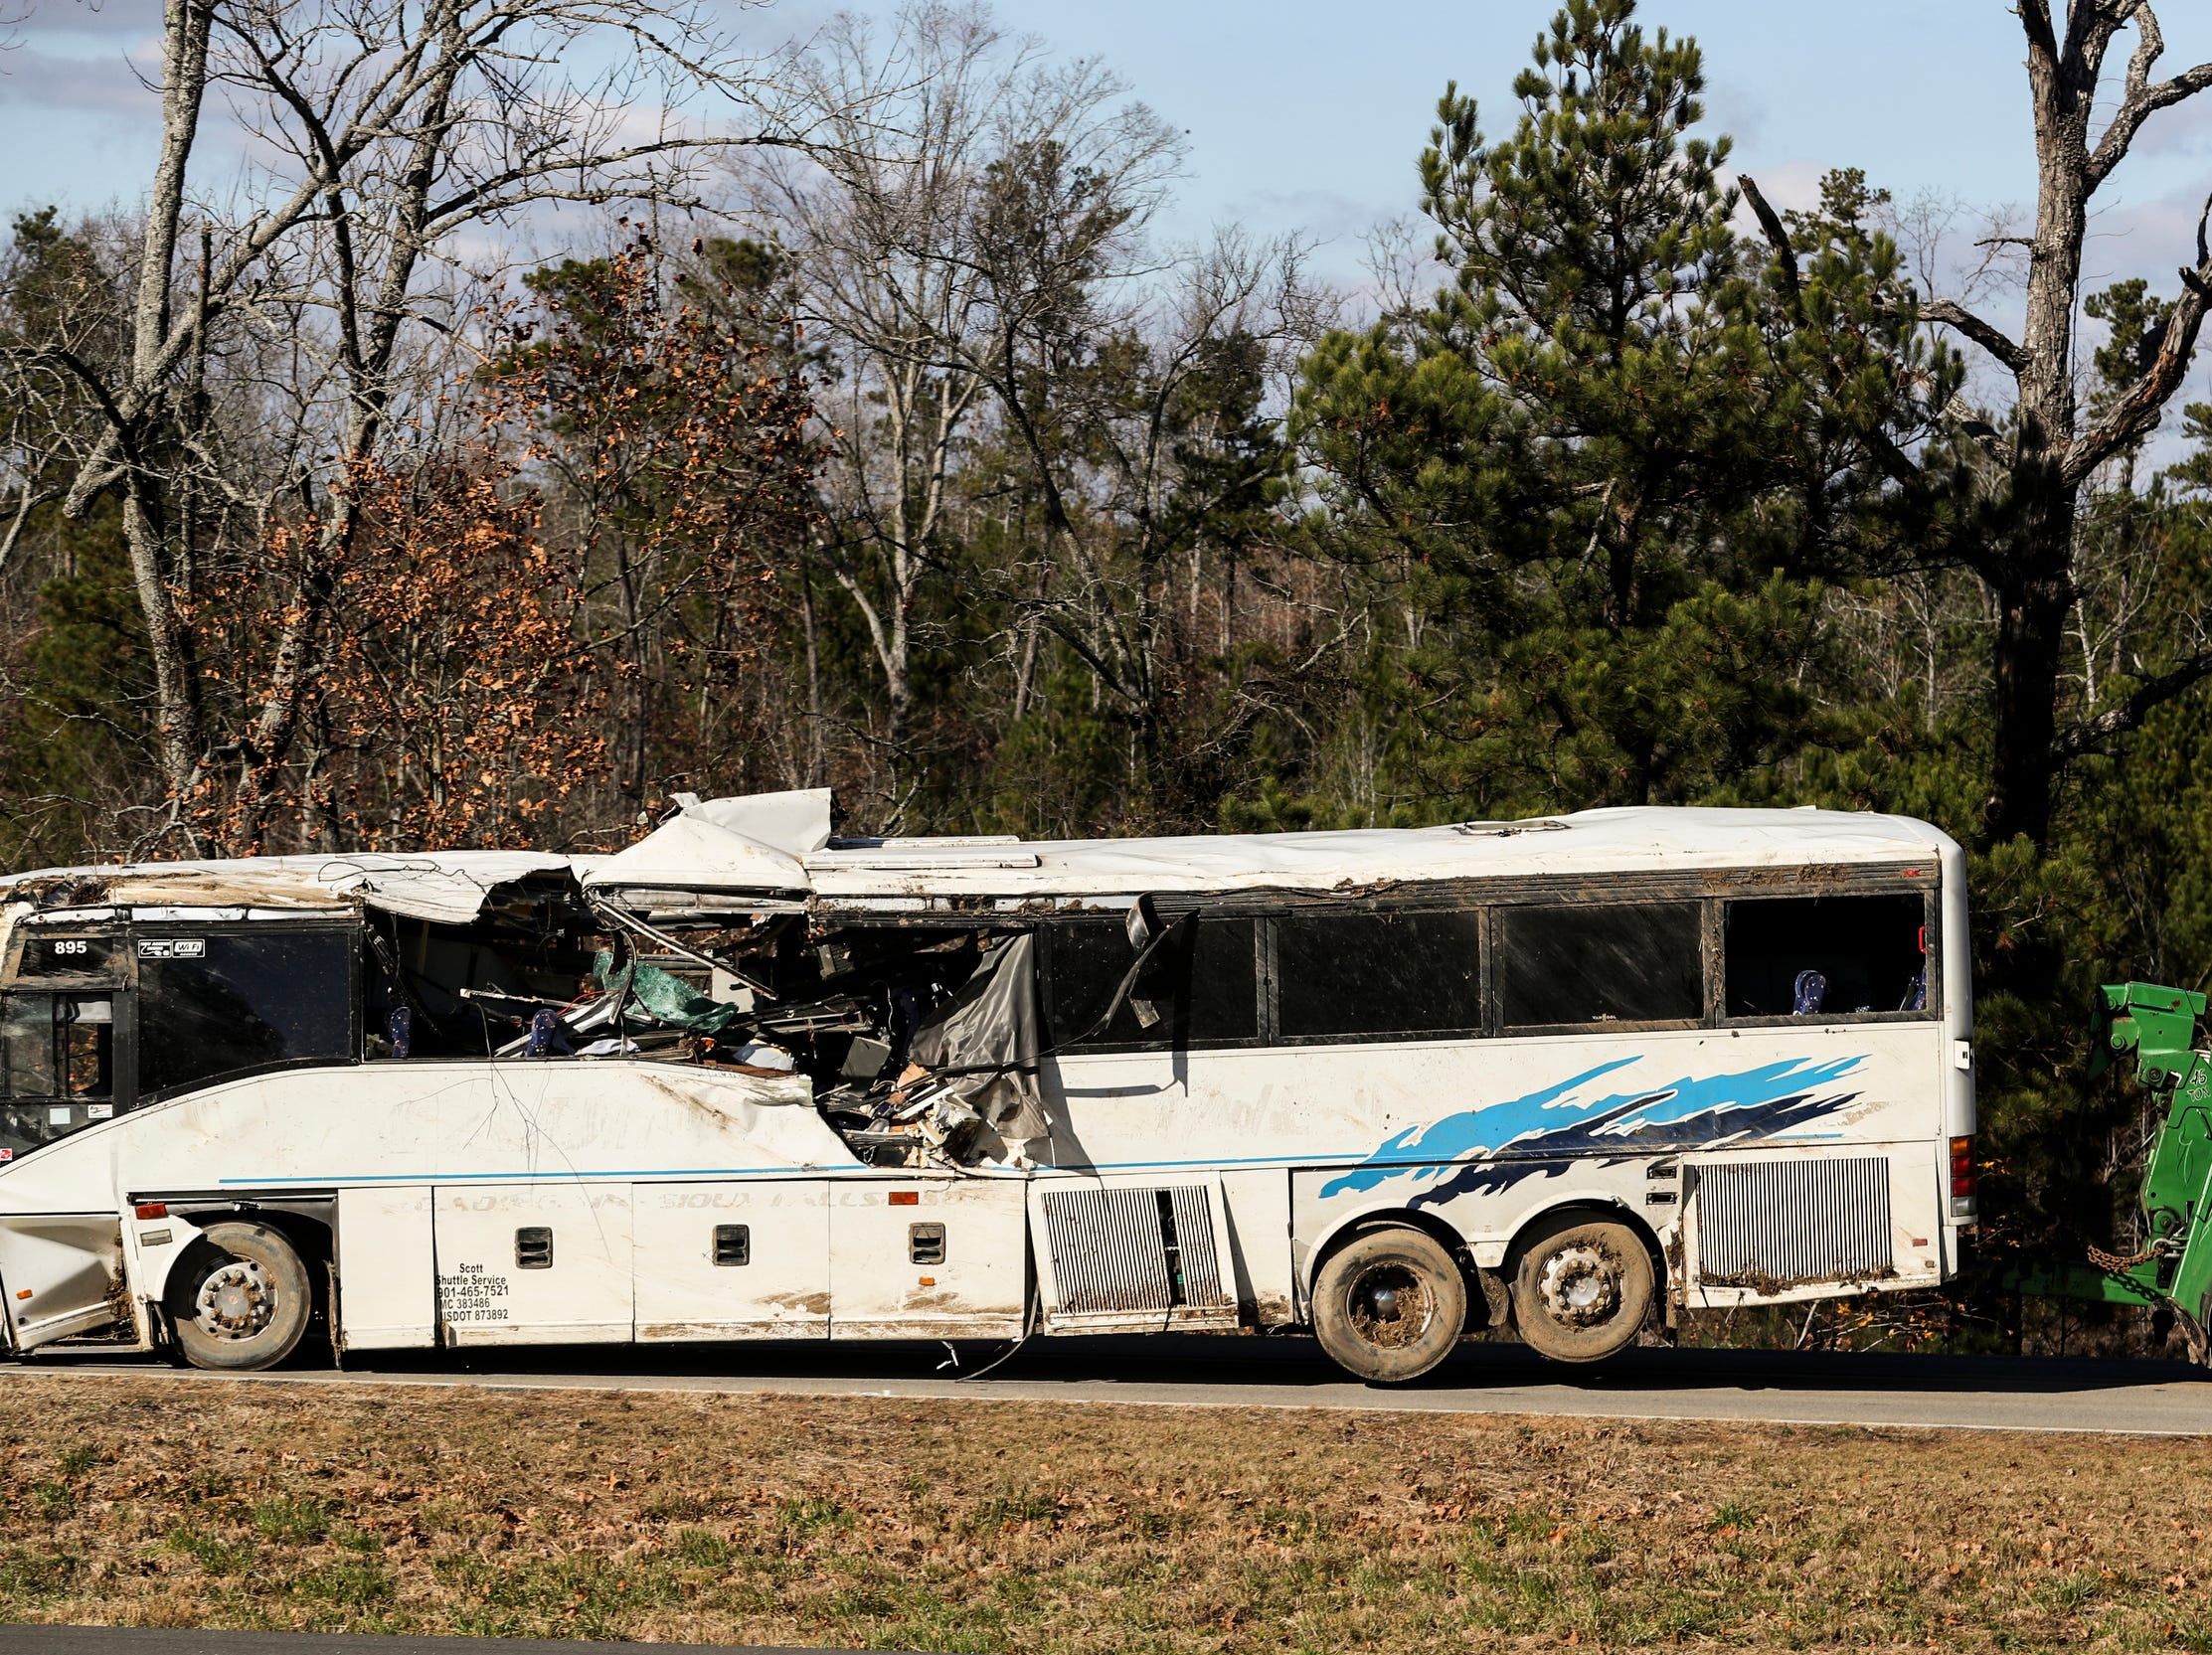 The bus that carried the football teams from Orange Mound that crashed outside Benton, Arkansas, is towed away from the scene of the accident Dec. 3, 2018.